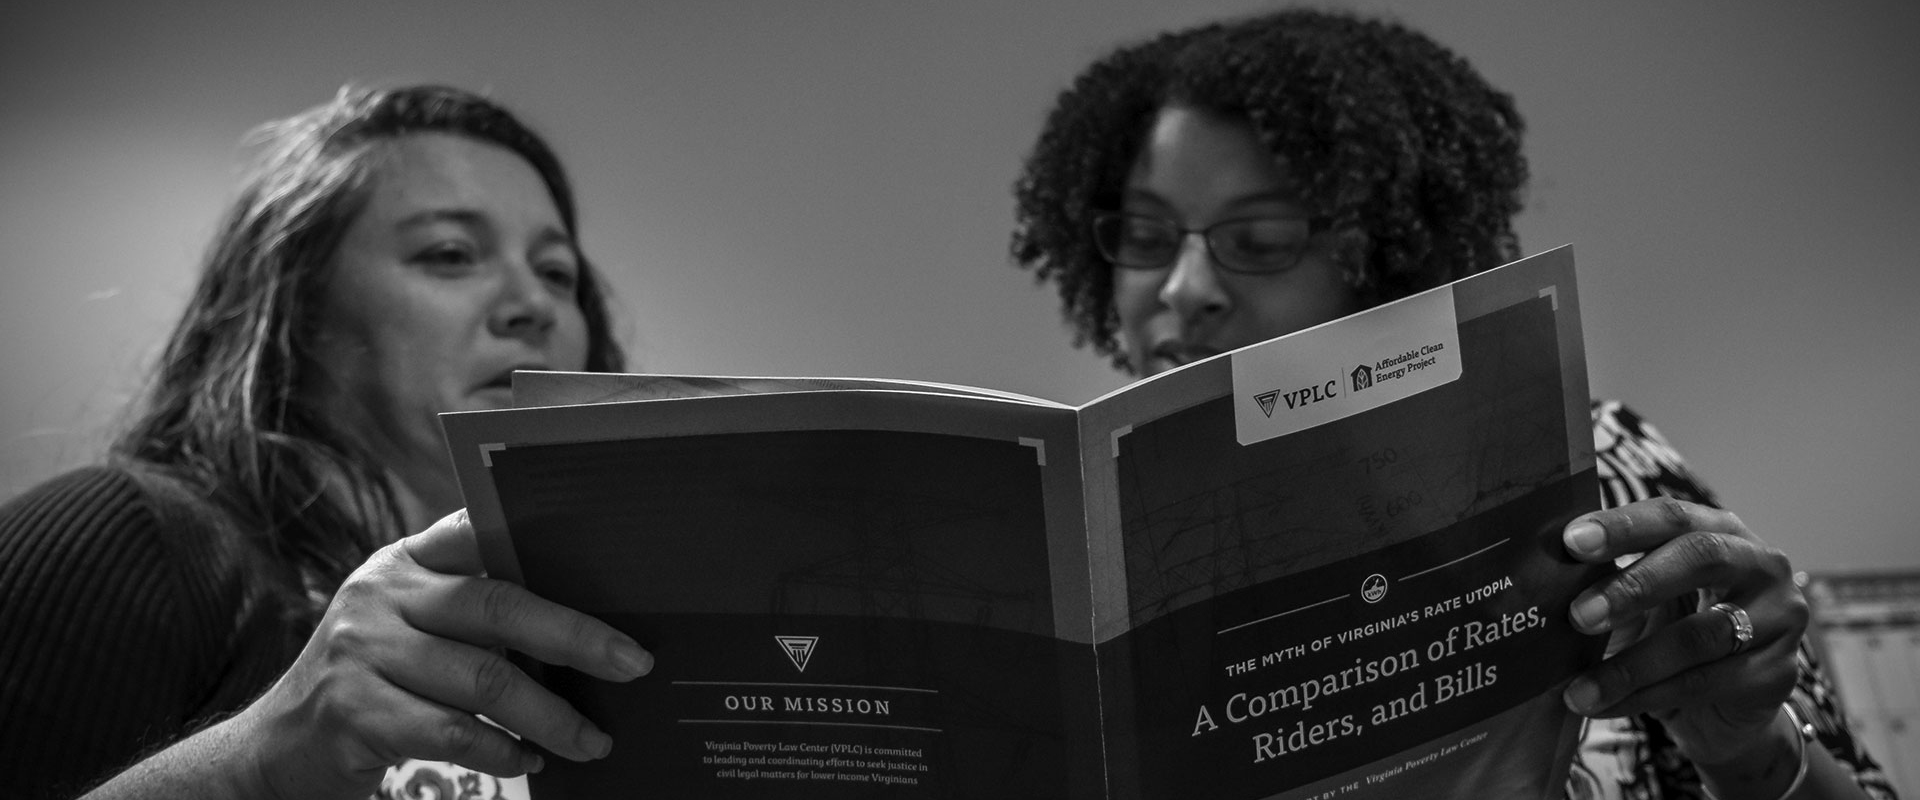 virginia poverty law group header image